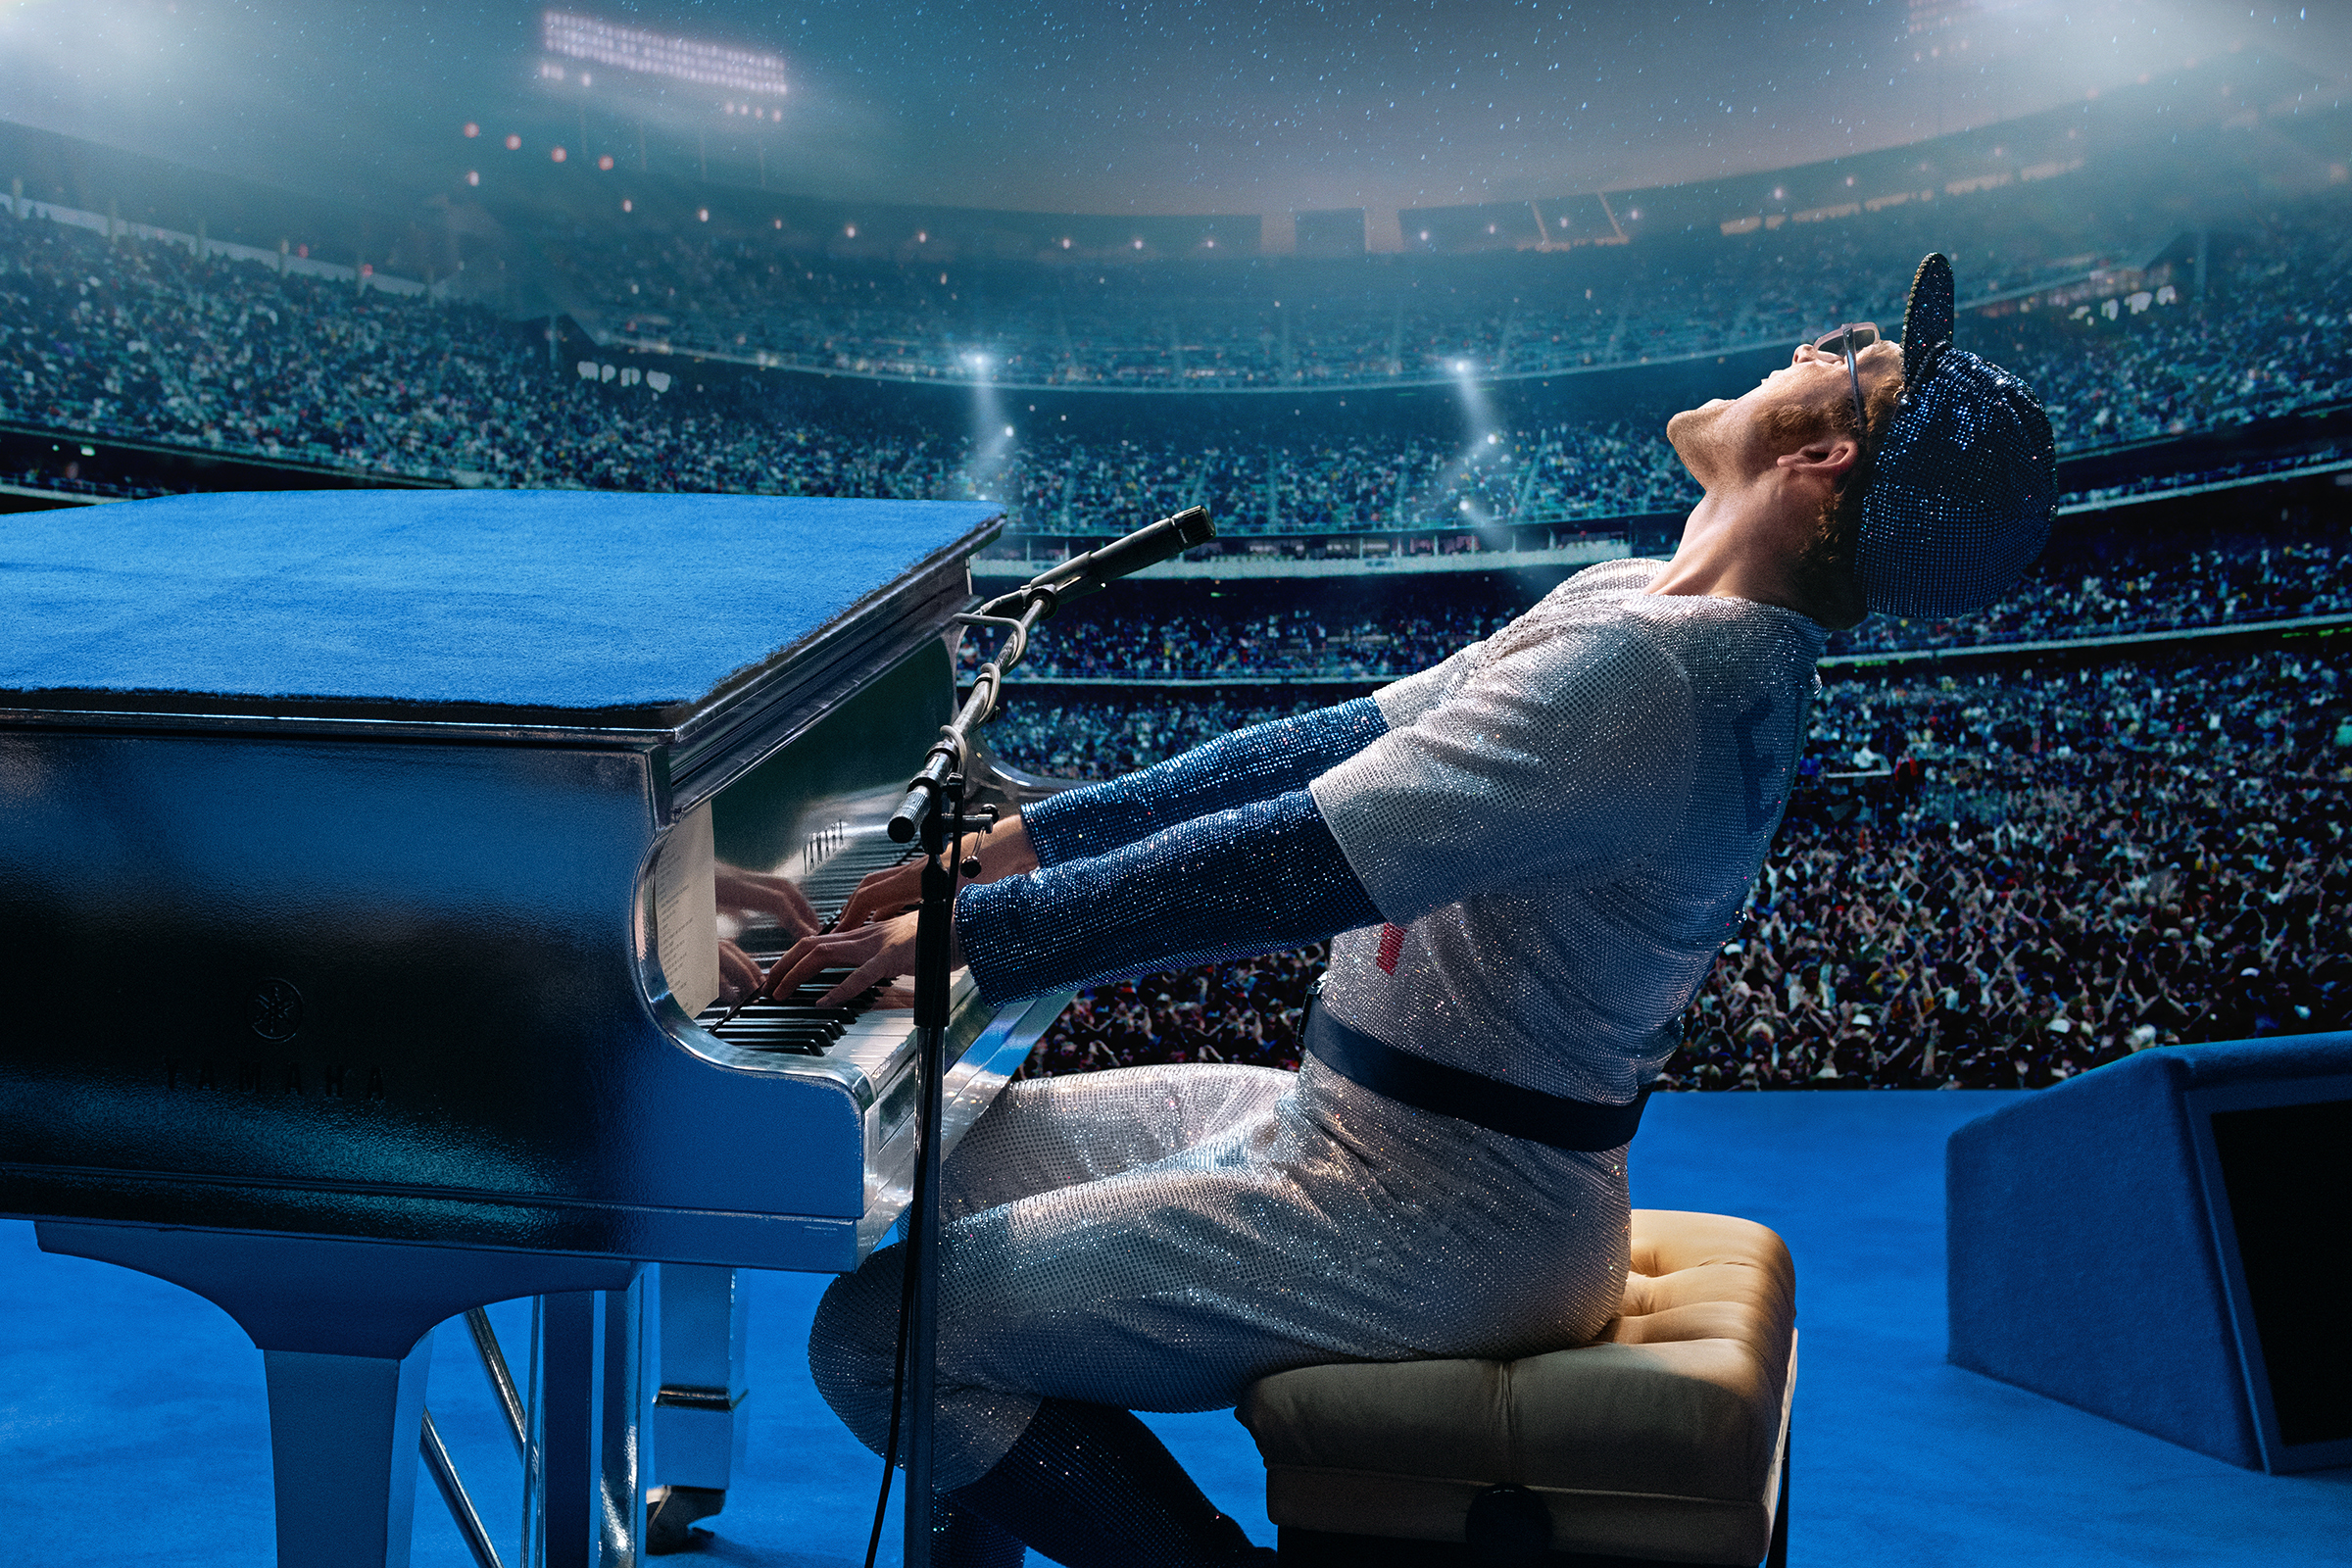 Elton John's Magical Mystery Movie: Inside The Making of 'Rocketman'